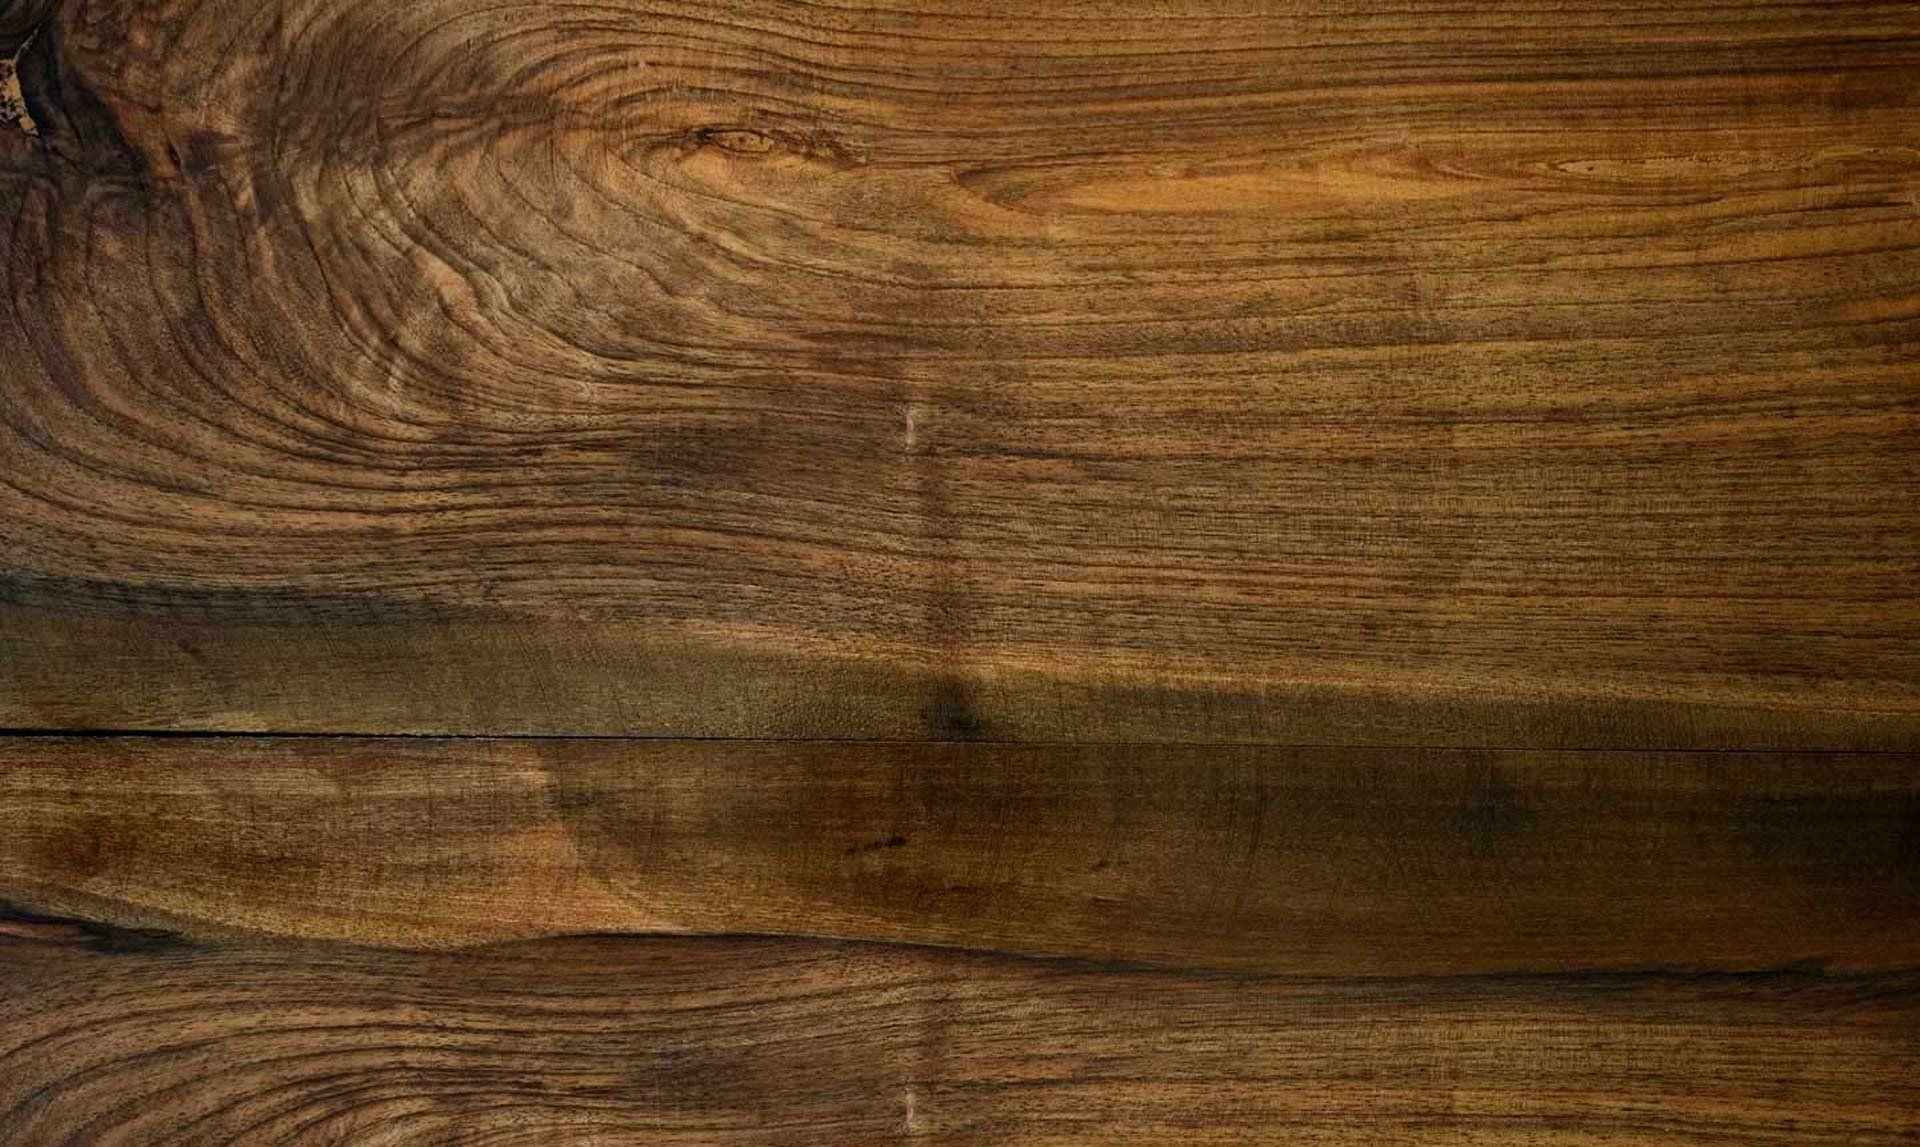 Holz full hd wallpaper and hintergrund 1920x1147 id 175459 for Holz wallpaper